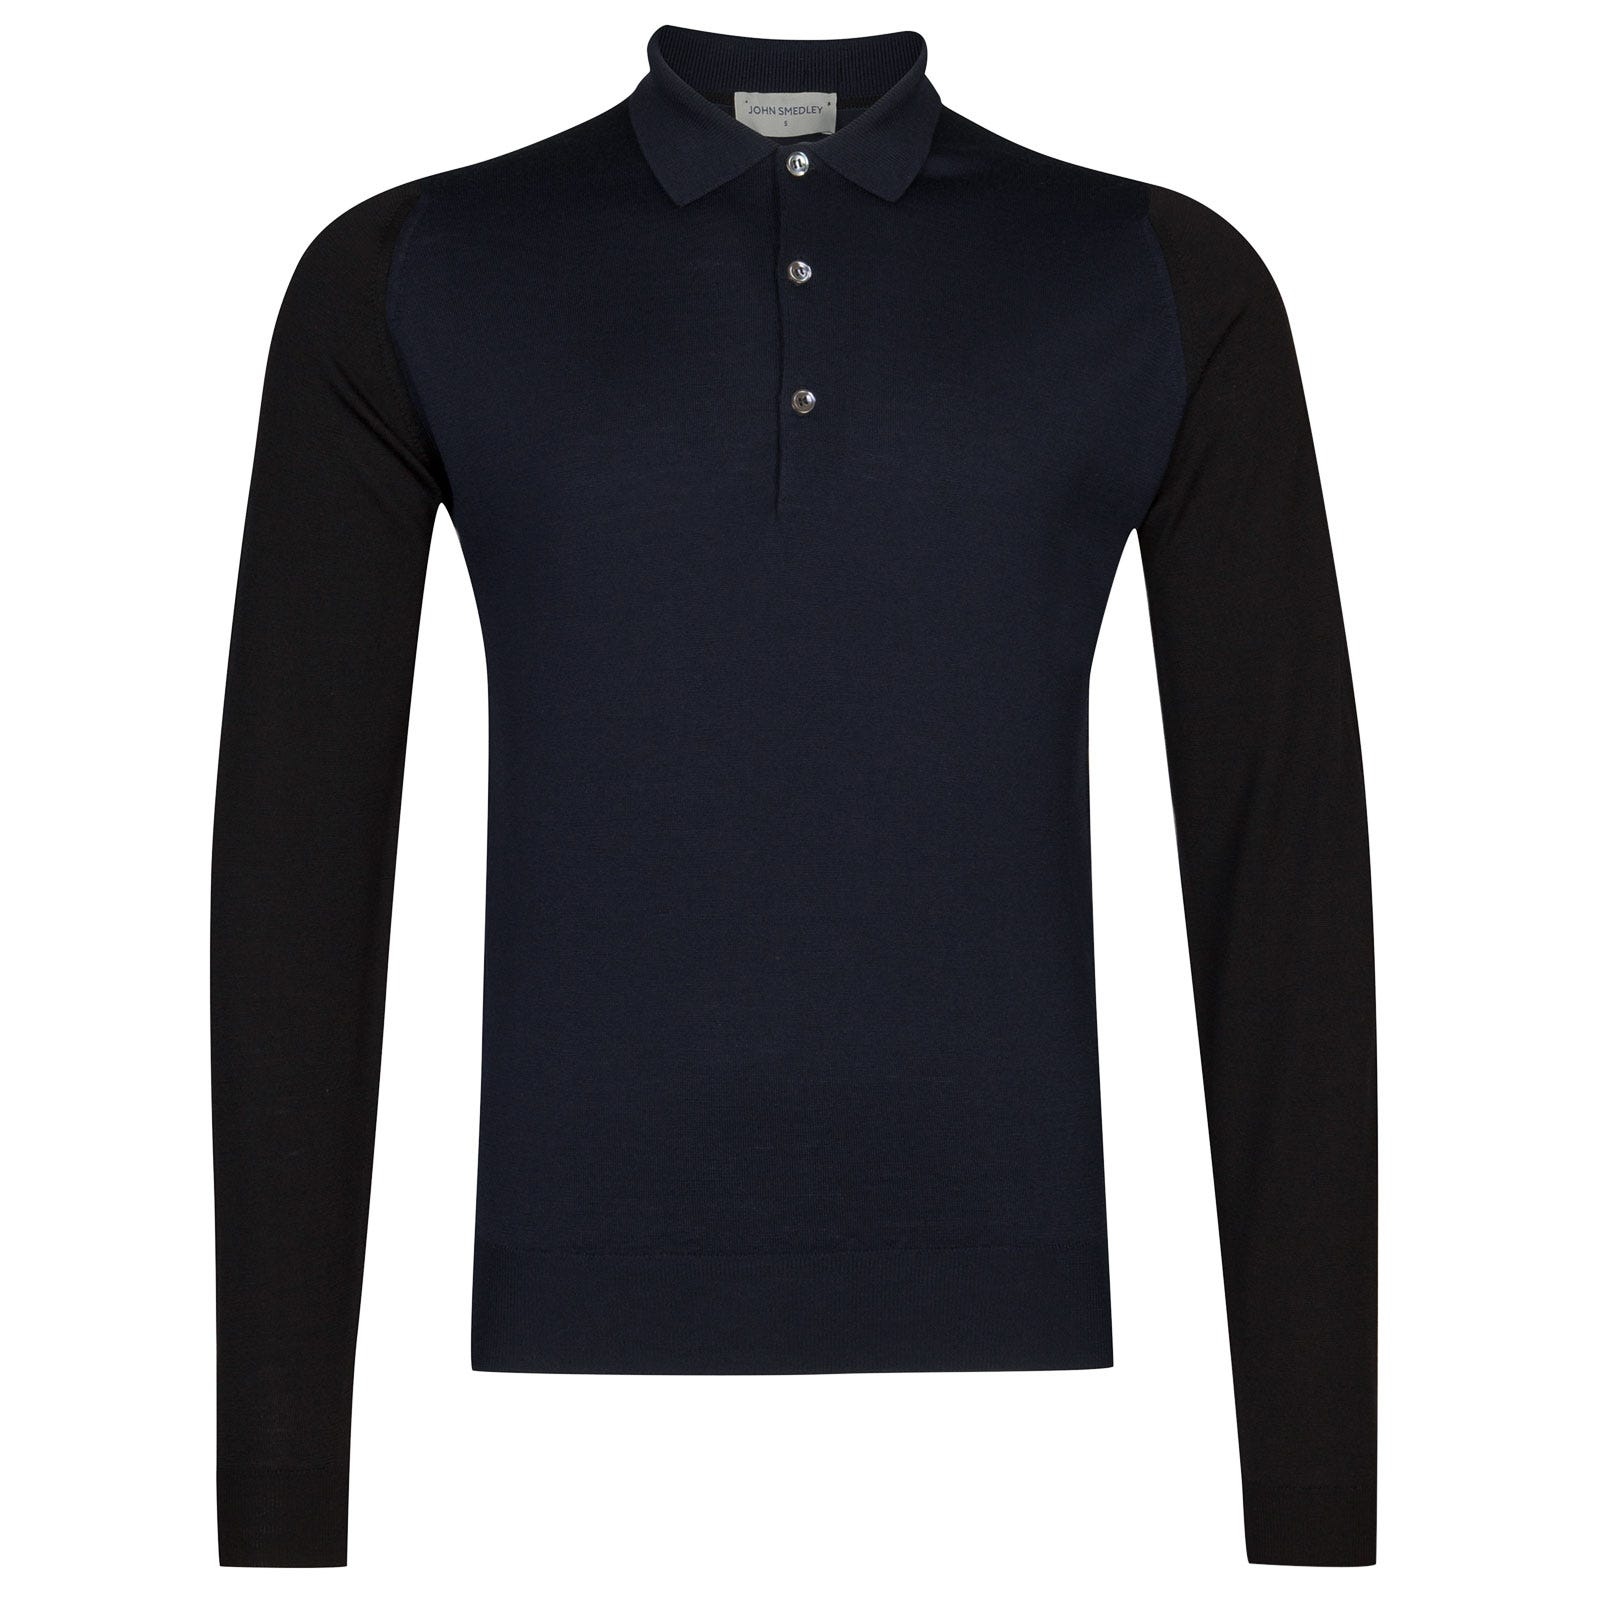 John Smedley Brightgate Merino Wool Shirt in Black/Midnight-XXL